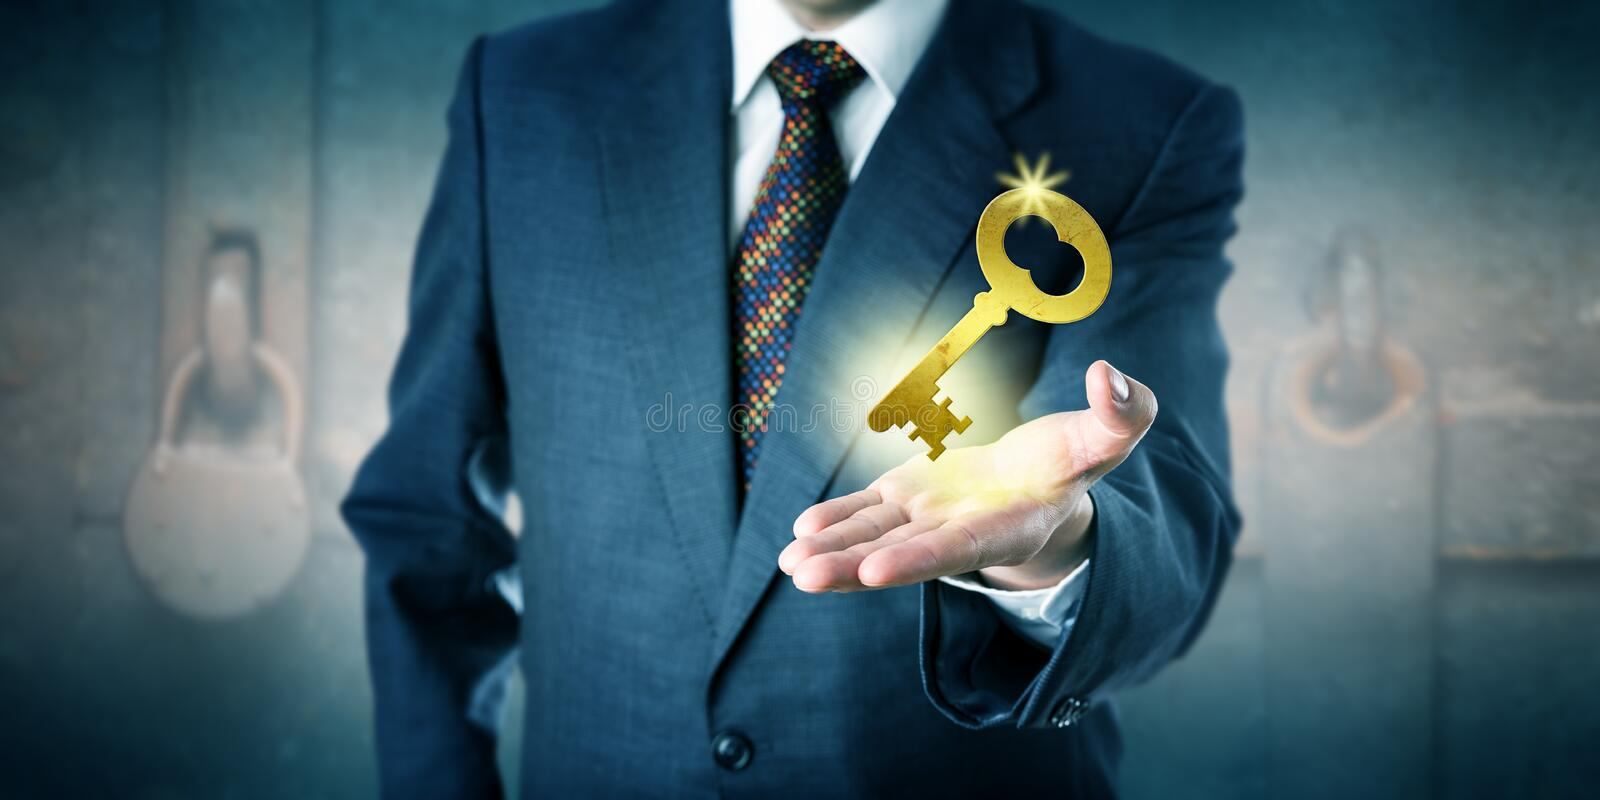 Business Man Offering A Golden Key In Open Palm. Business man is offering a golden key in his open palm. Business concept for key to success, access to knowledge stock photos